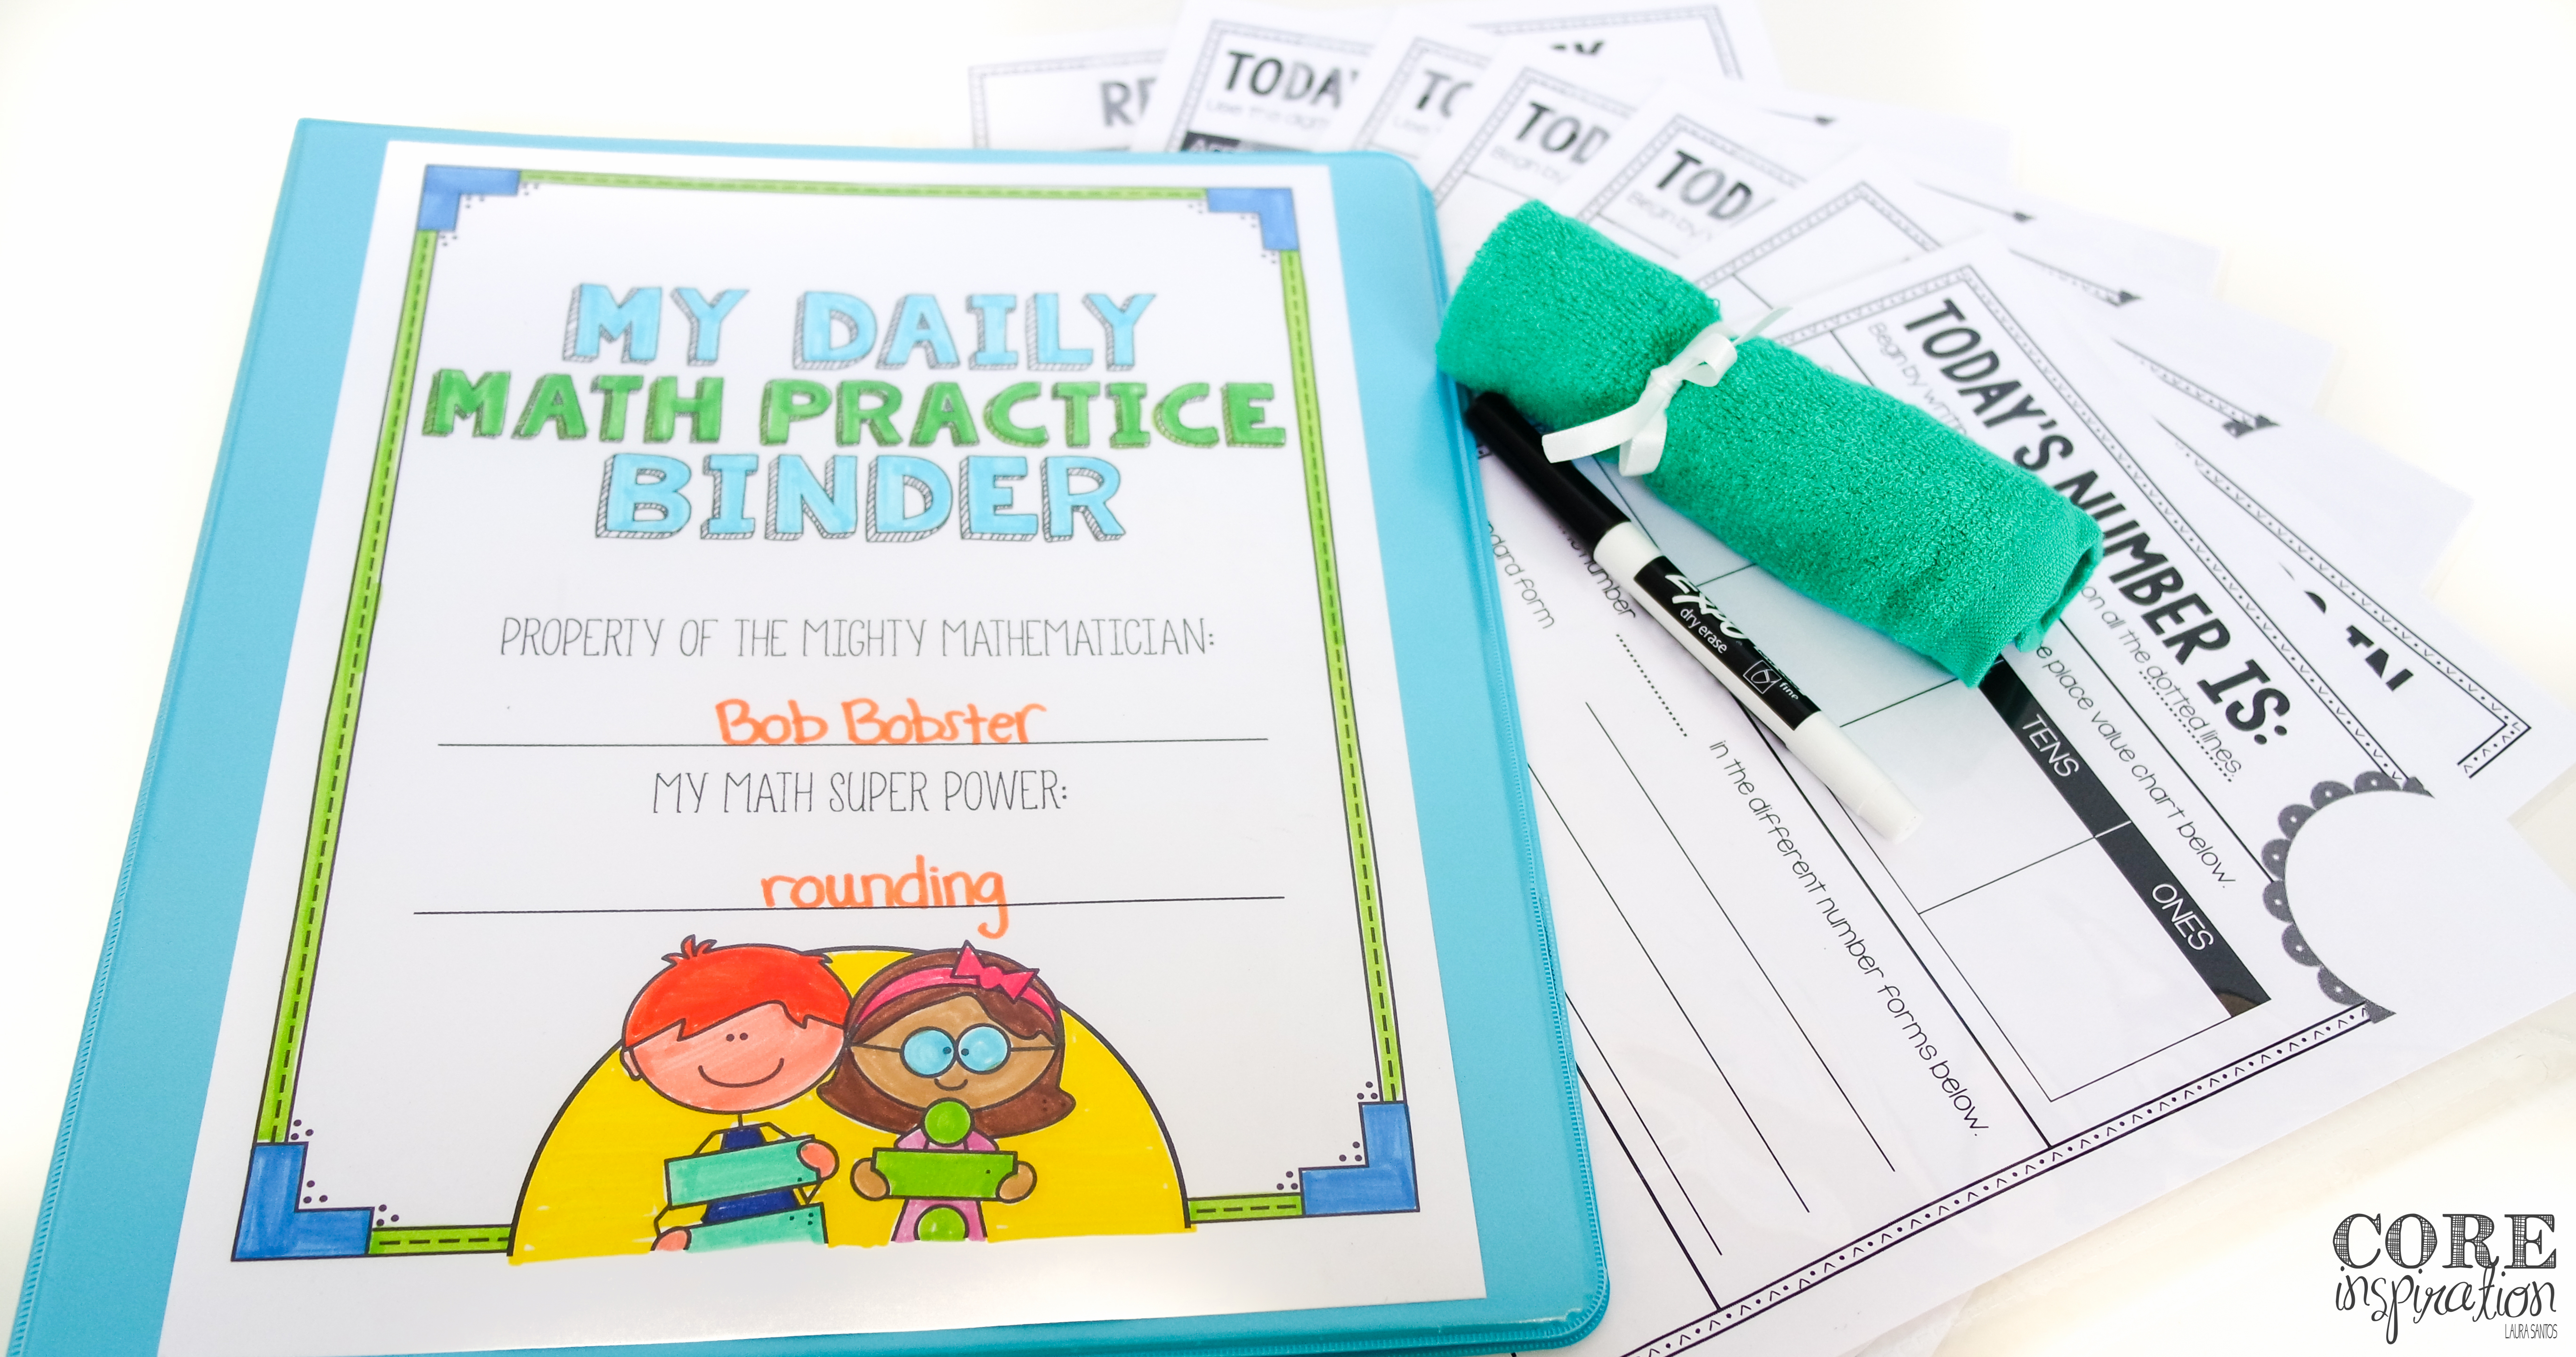 To get started with using a number of the day binder in your classroom, gather sheet protectors, white board markers, washcloths or erasers, and a binder for each student.